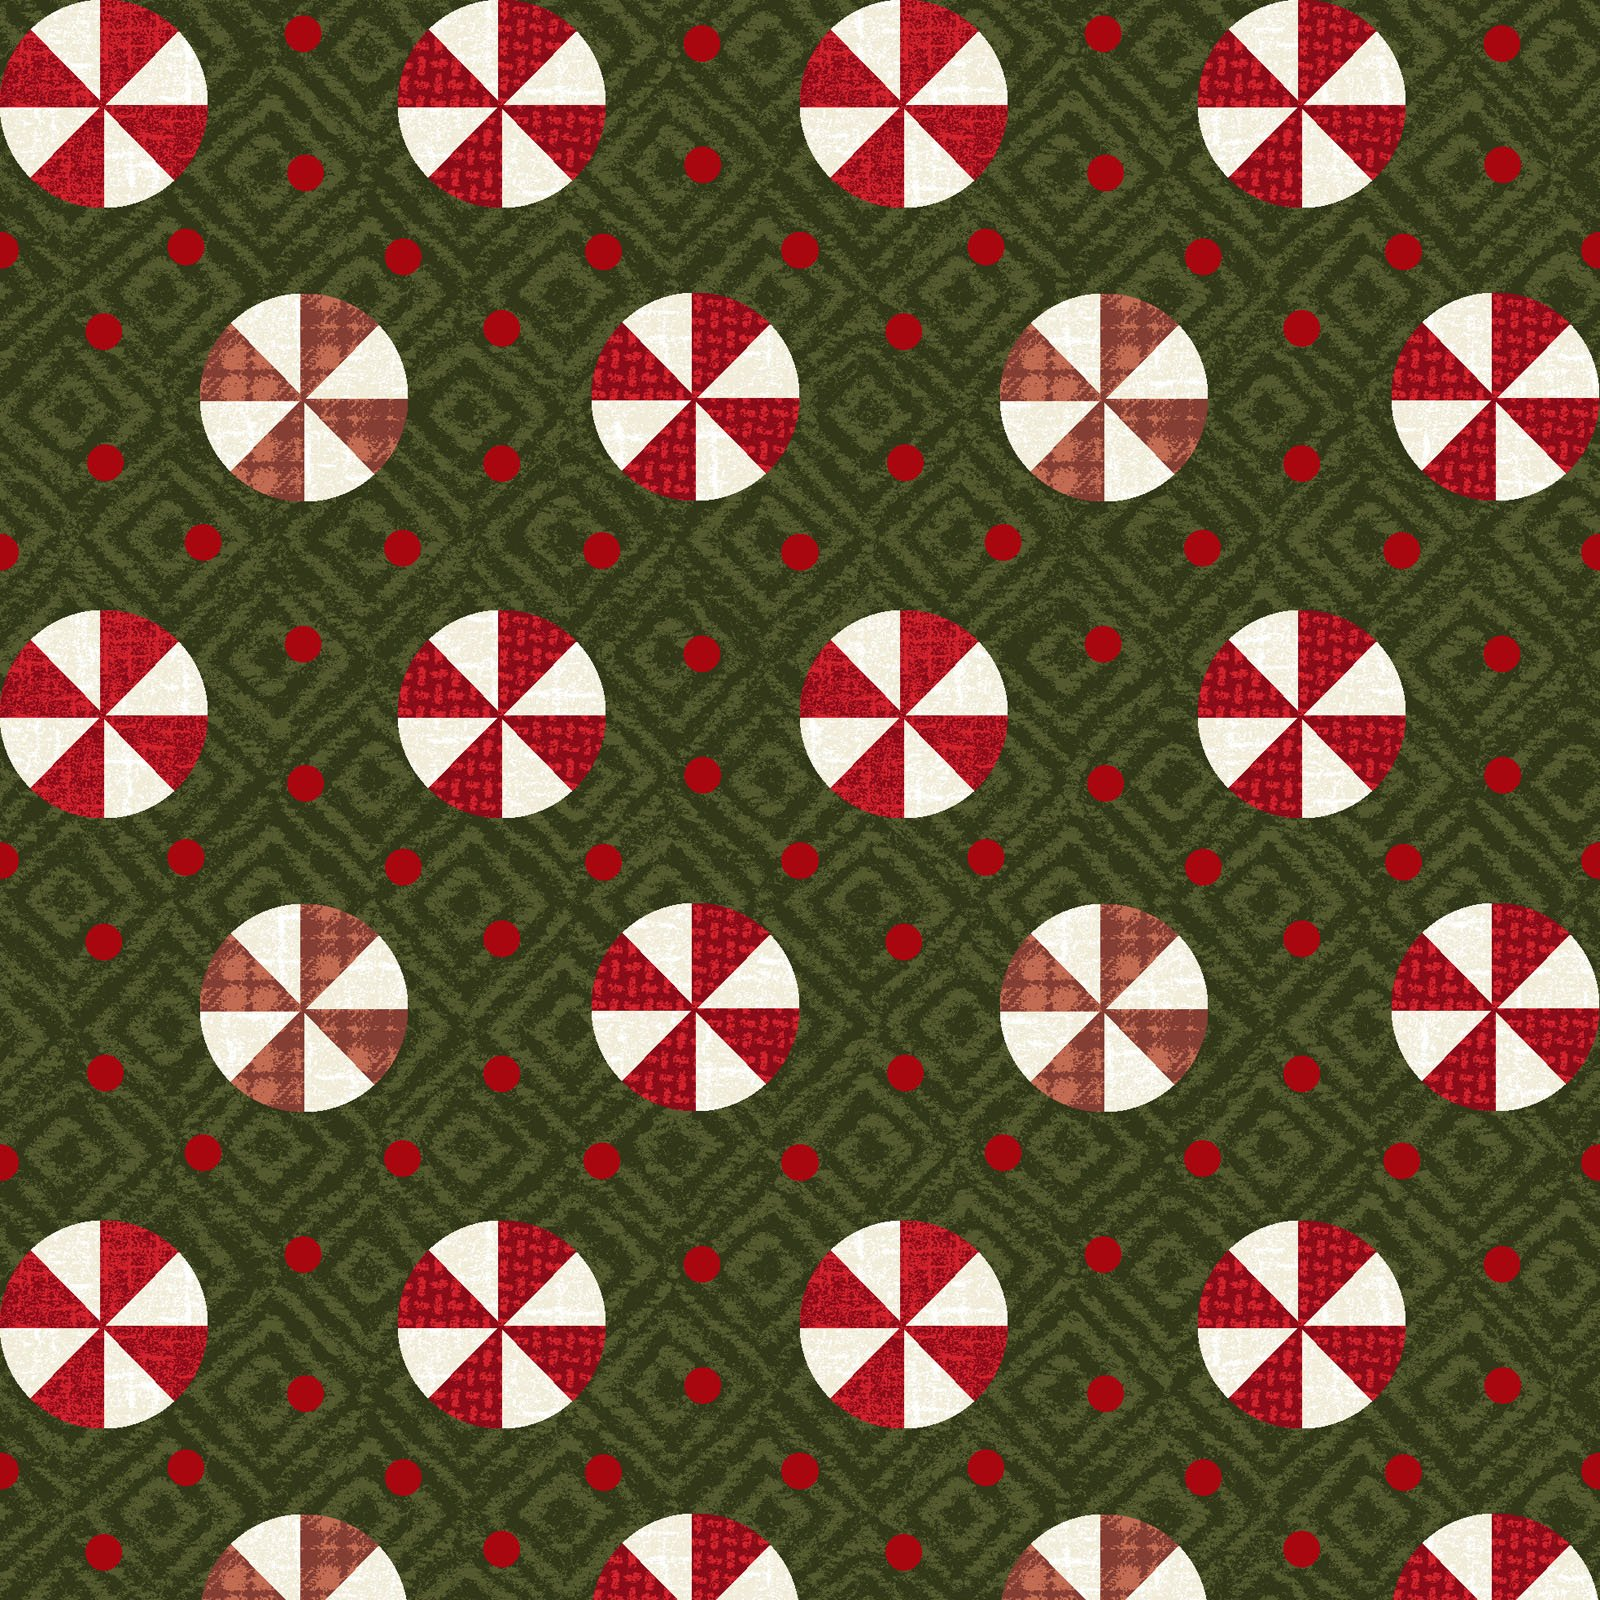 EESC-F9936 G - SNOWDAYS FLANNEL BY BONNIE SULLIVAN PEPPERMINT GREEN - ARRIVING IN AUGUST 2021